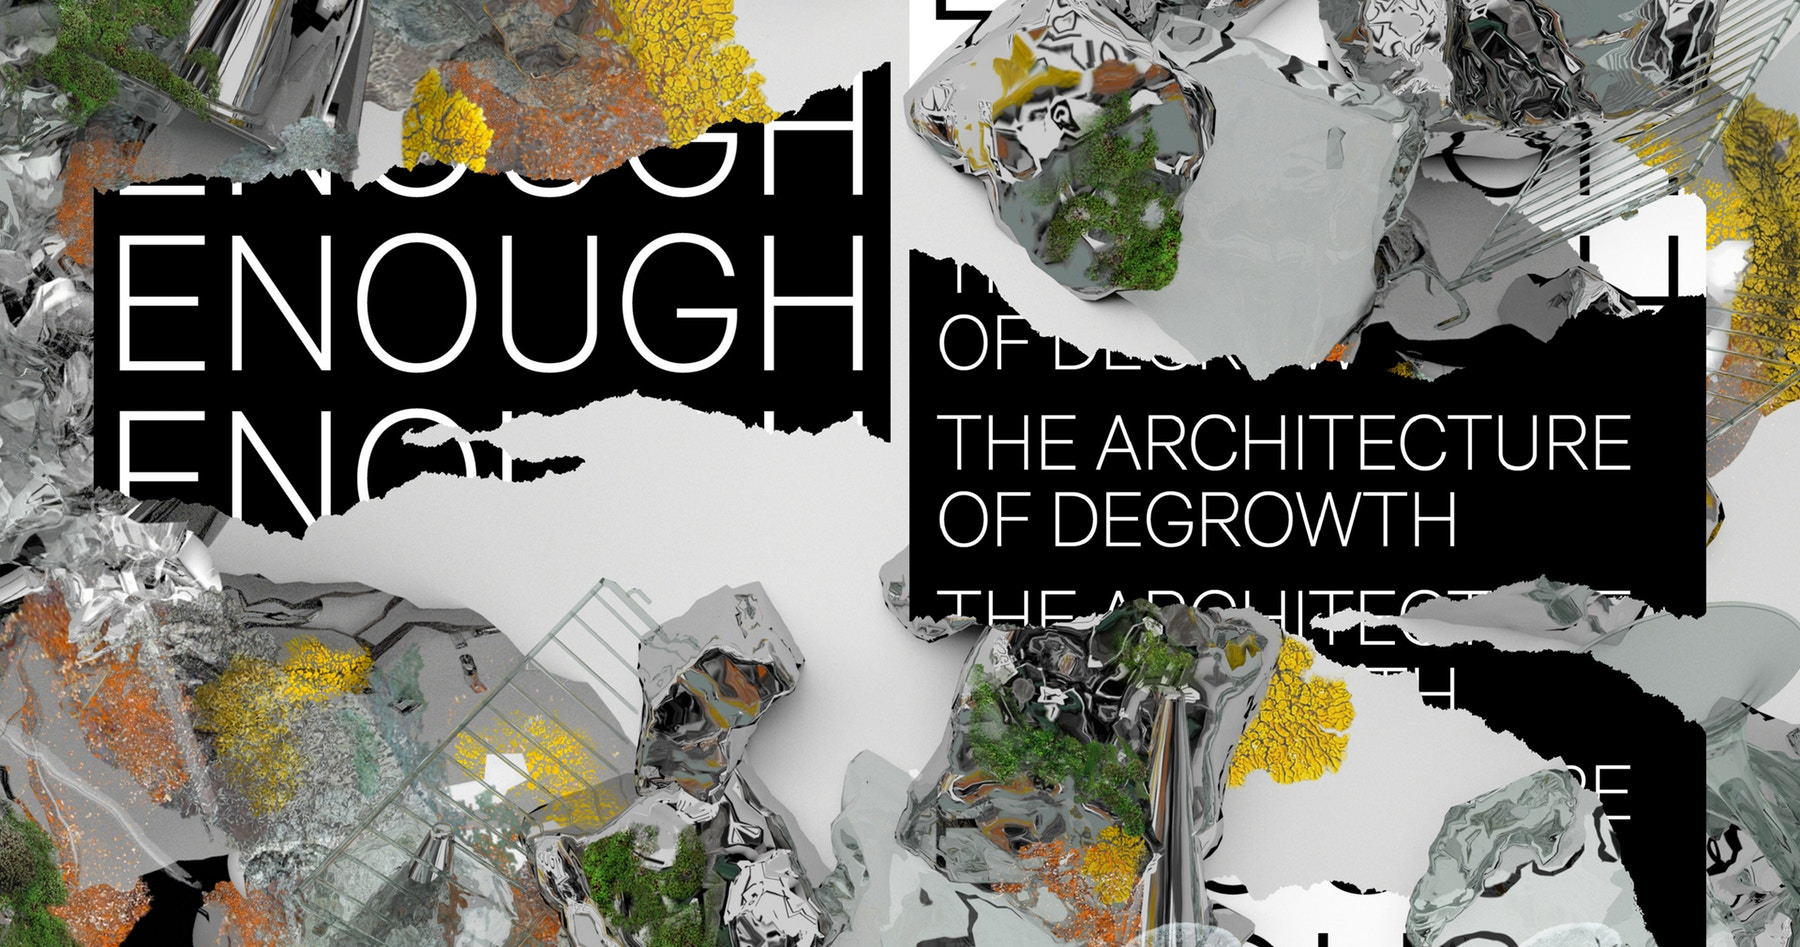 Enough: The Architecture of Degrowth at Oslo Architecture Triennale